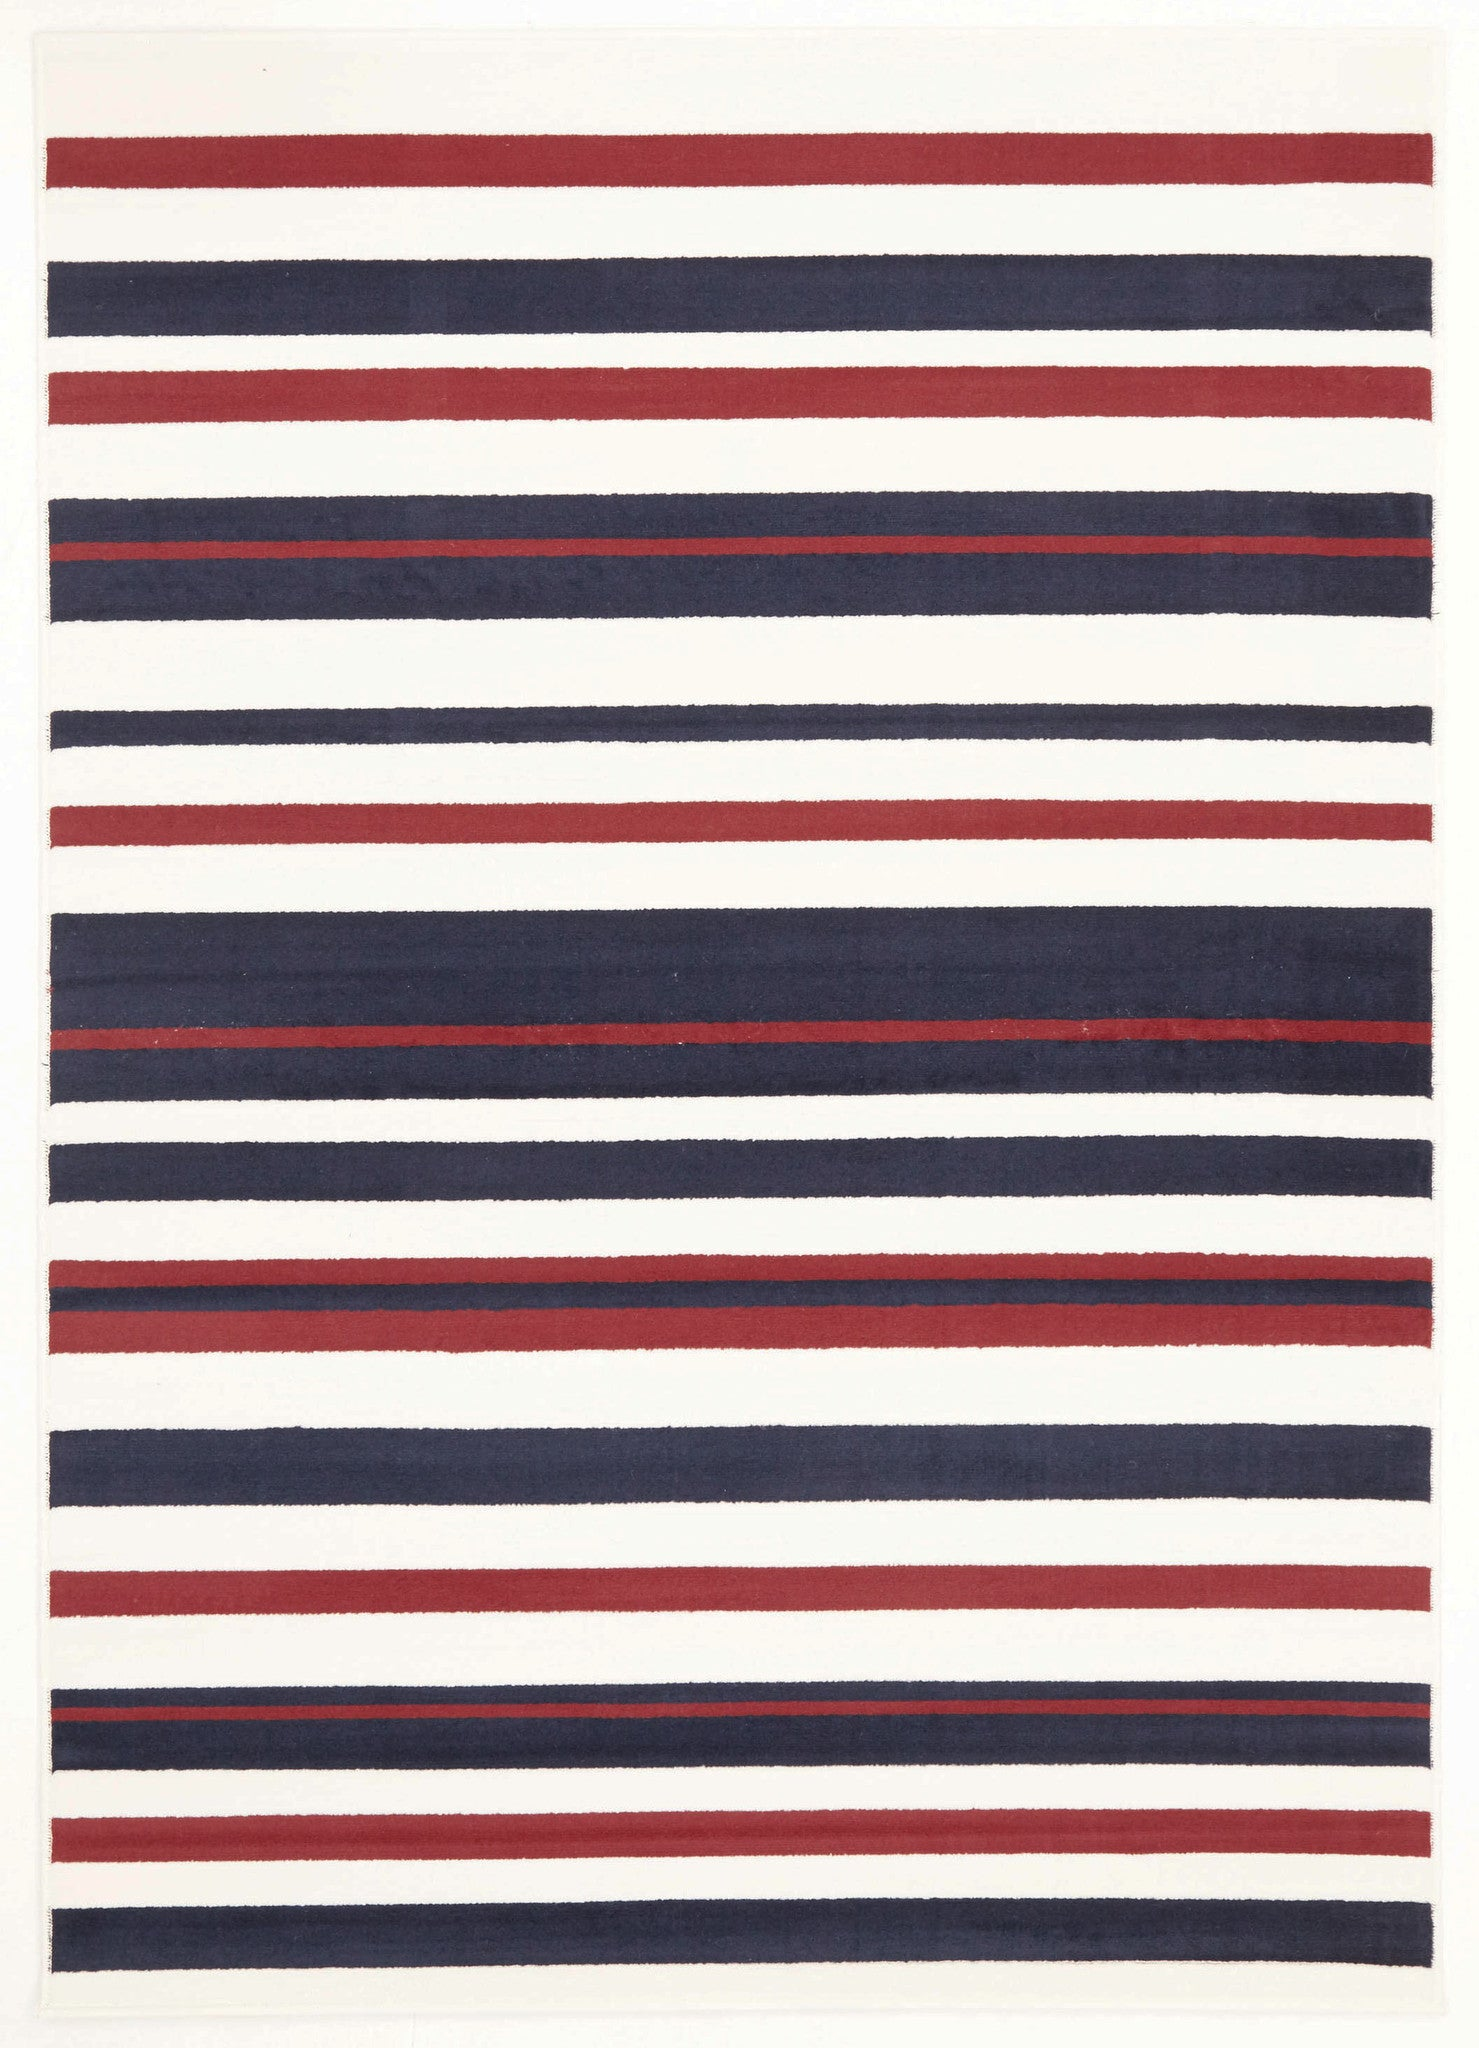 Silver BCF 1114 X44 Rug - Blue Red White